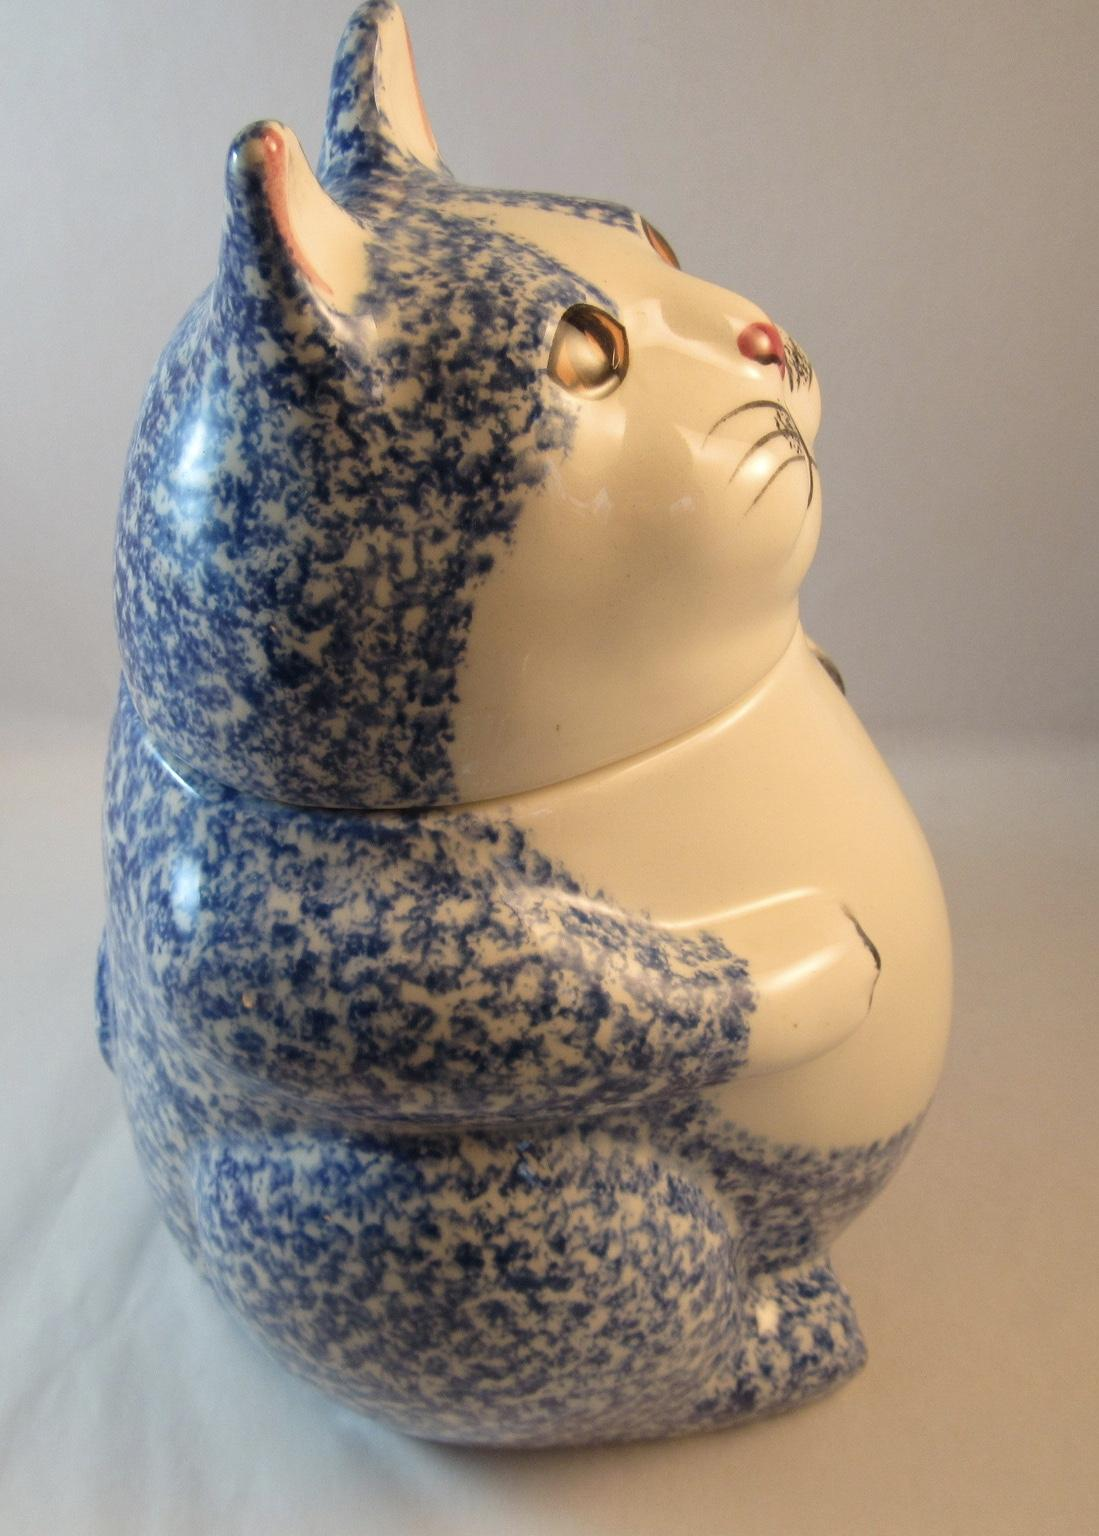 N S Gustin Co Cat Cookie Jar Blue White Spongeware Kitty